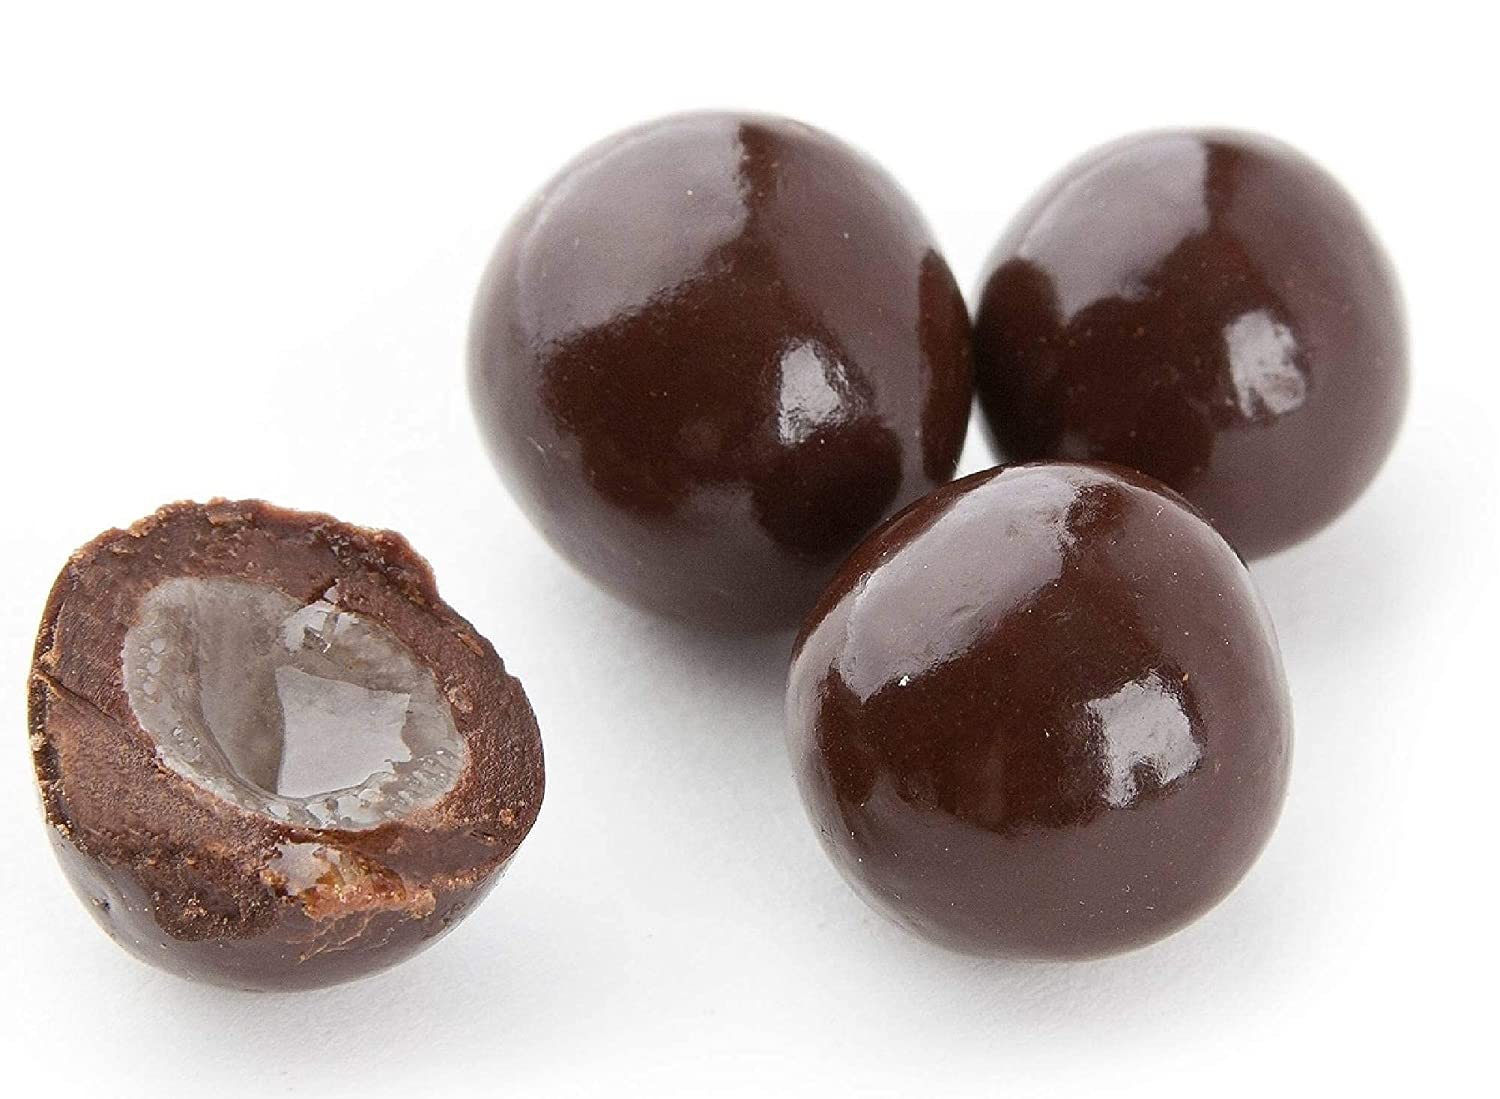 Andy Anand Dark Chocolate Cherry Cordials, Amazing-Delicious-Decadent Gift Boxed & Greeting Card Birthday, Valentine, Christmas Gourmet Food Mothers Fathers day, Wedding, Anniversary Get Well (1 lbs)